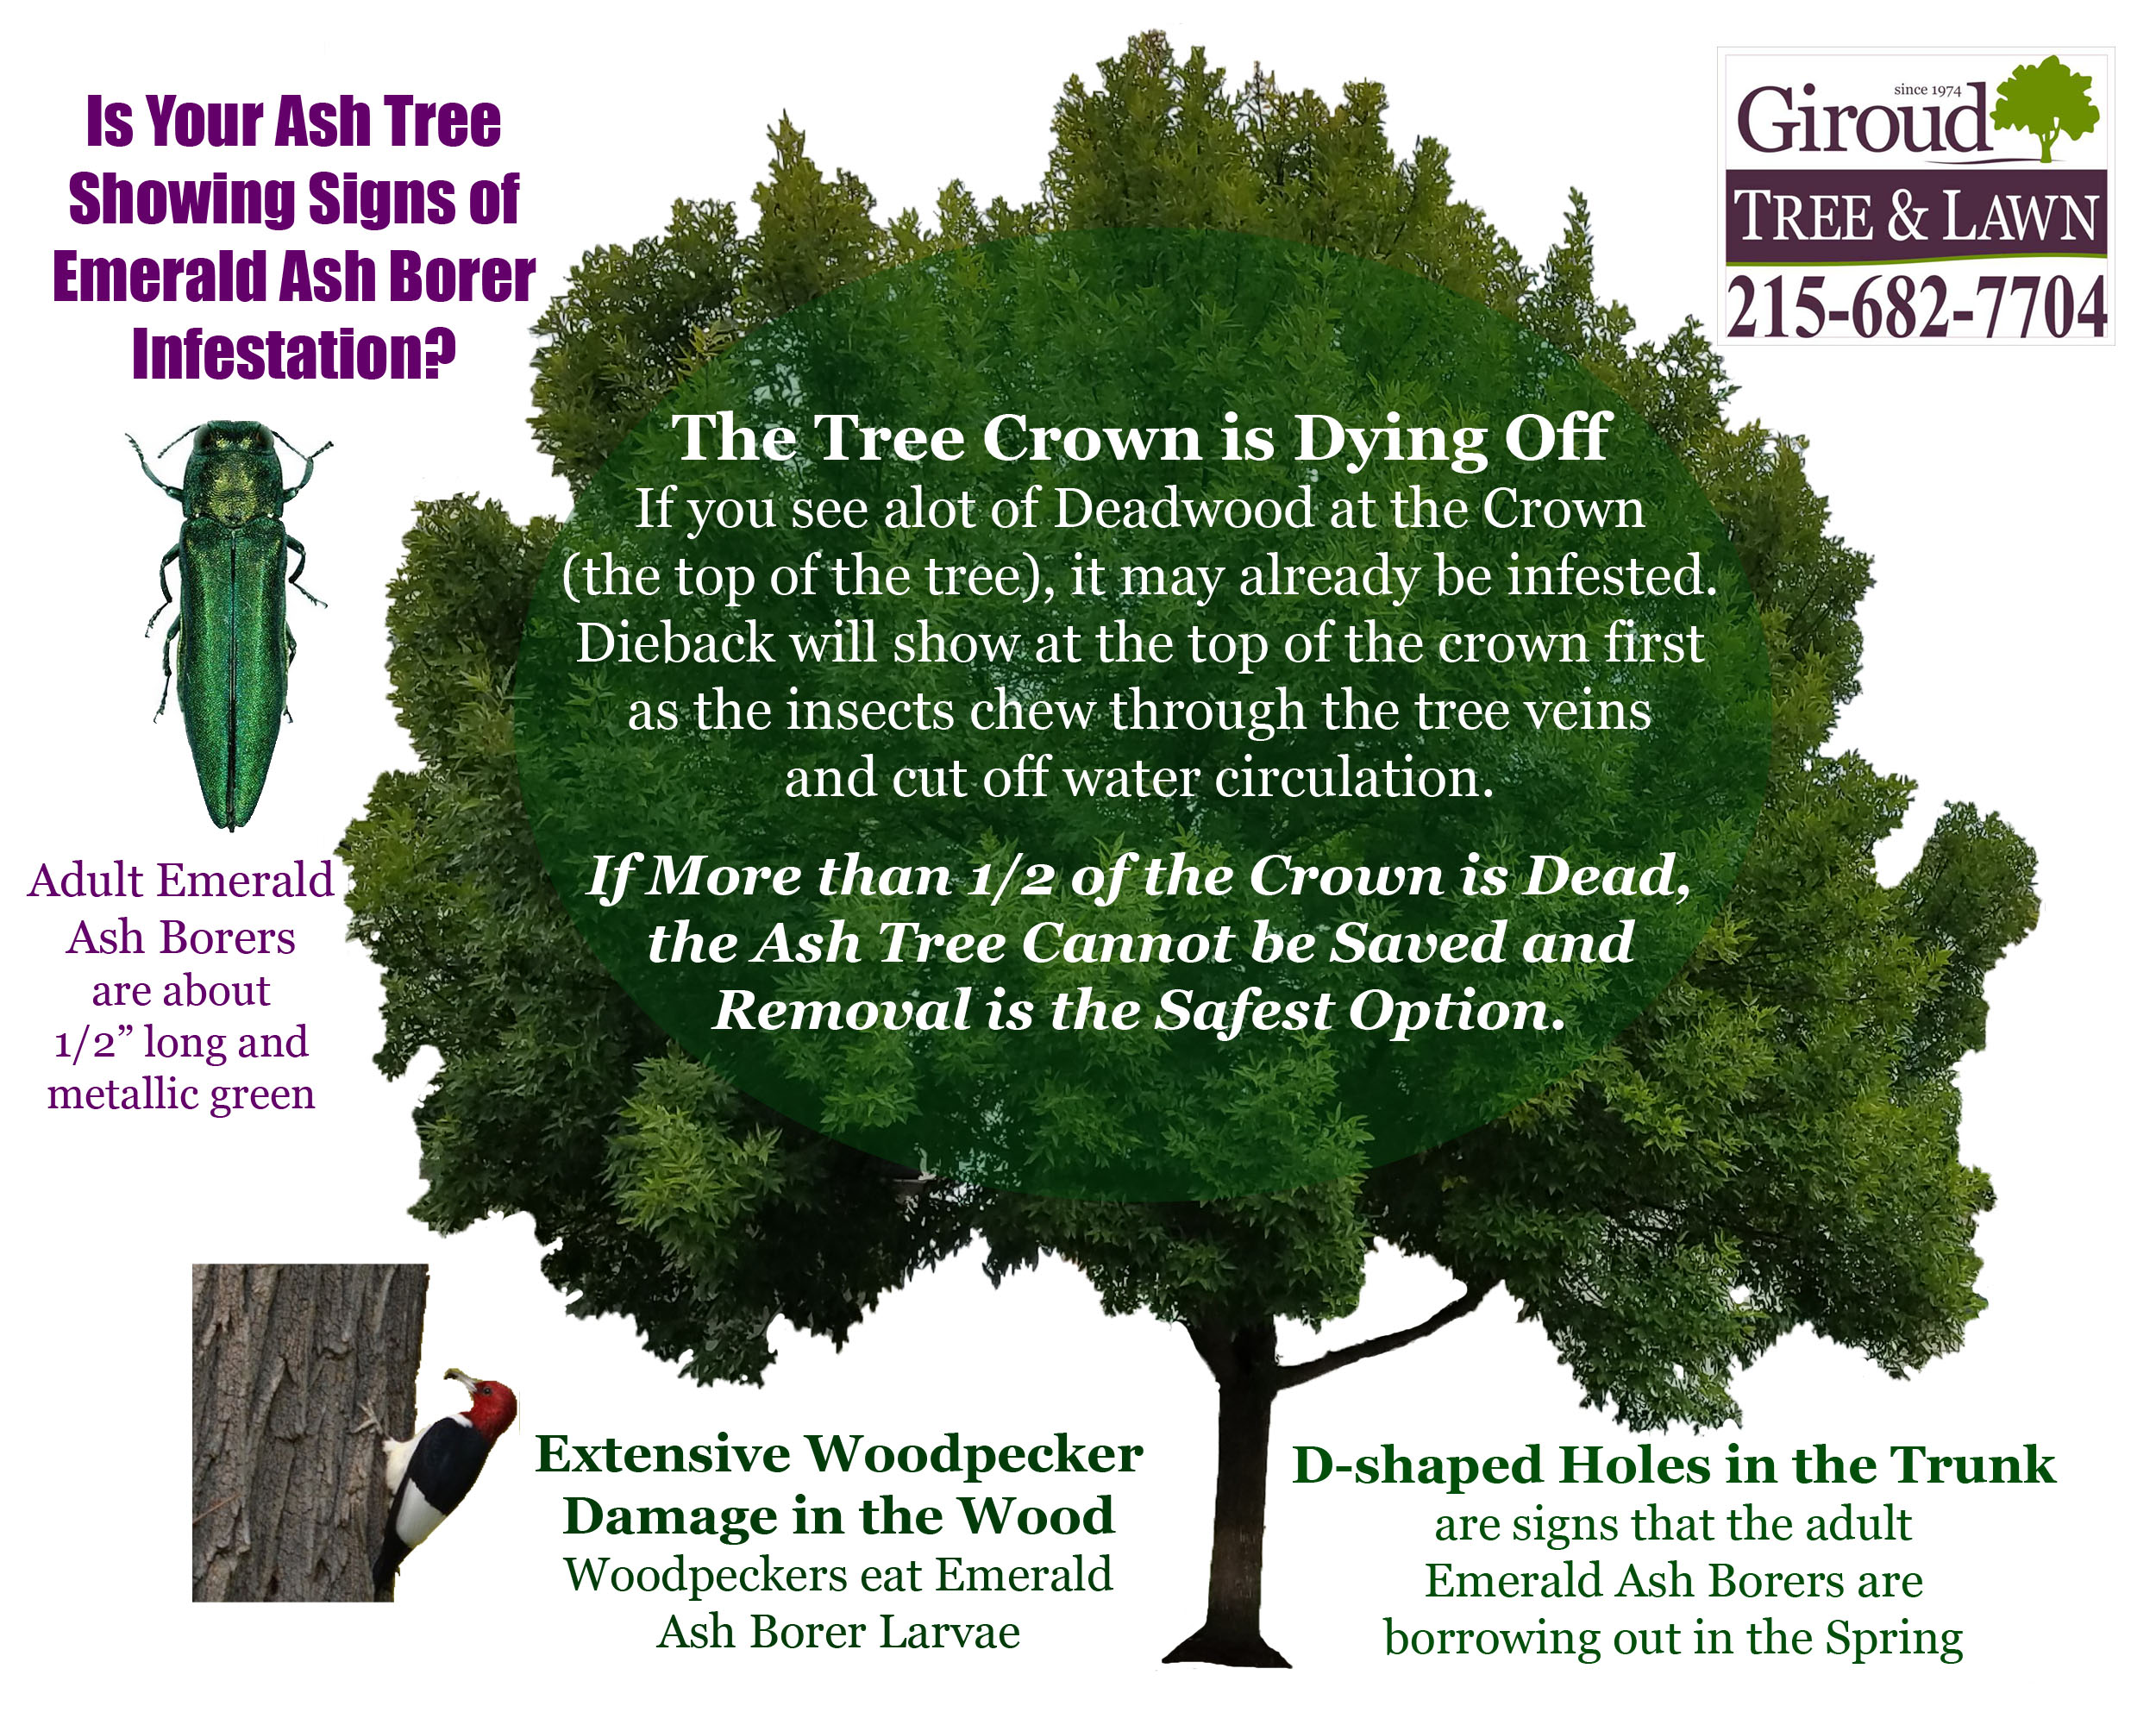 Is Your Tree showing Signs of Emerald Ash Borer Infestation